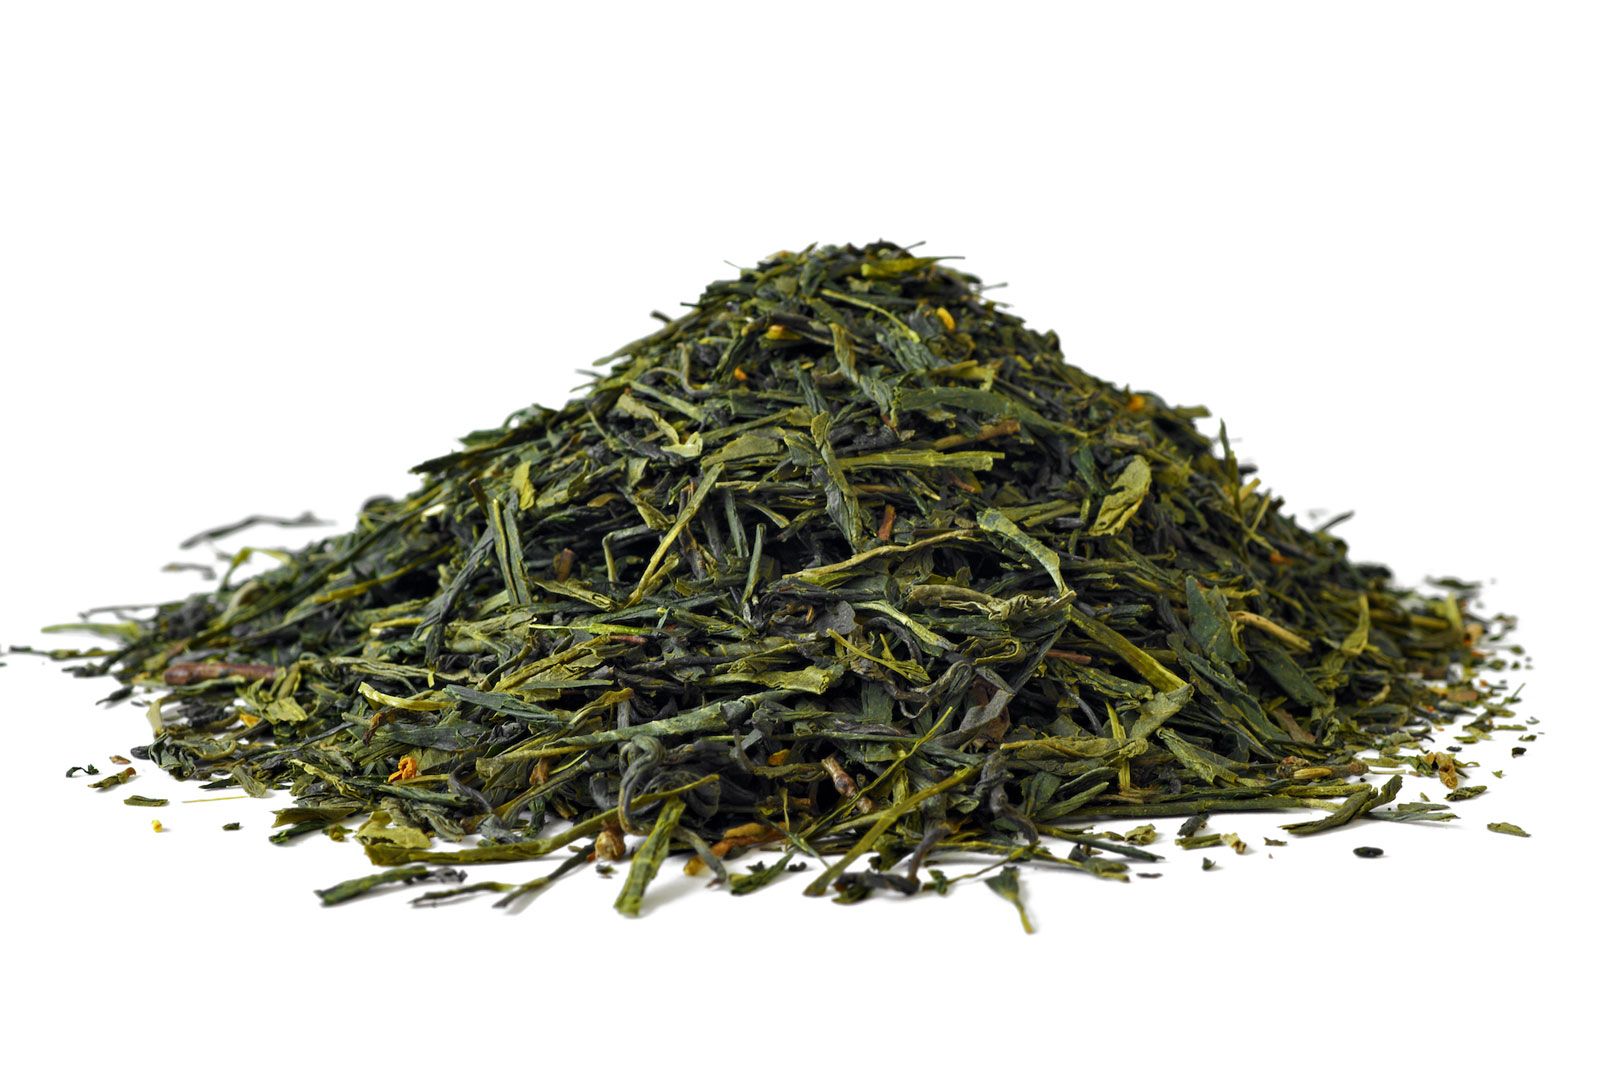 Organic Tea | Is There A Benefit To Drinking Organic Tea vs. Regular Tea?